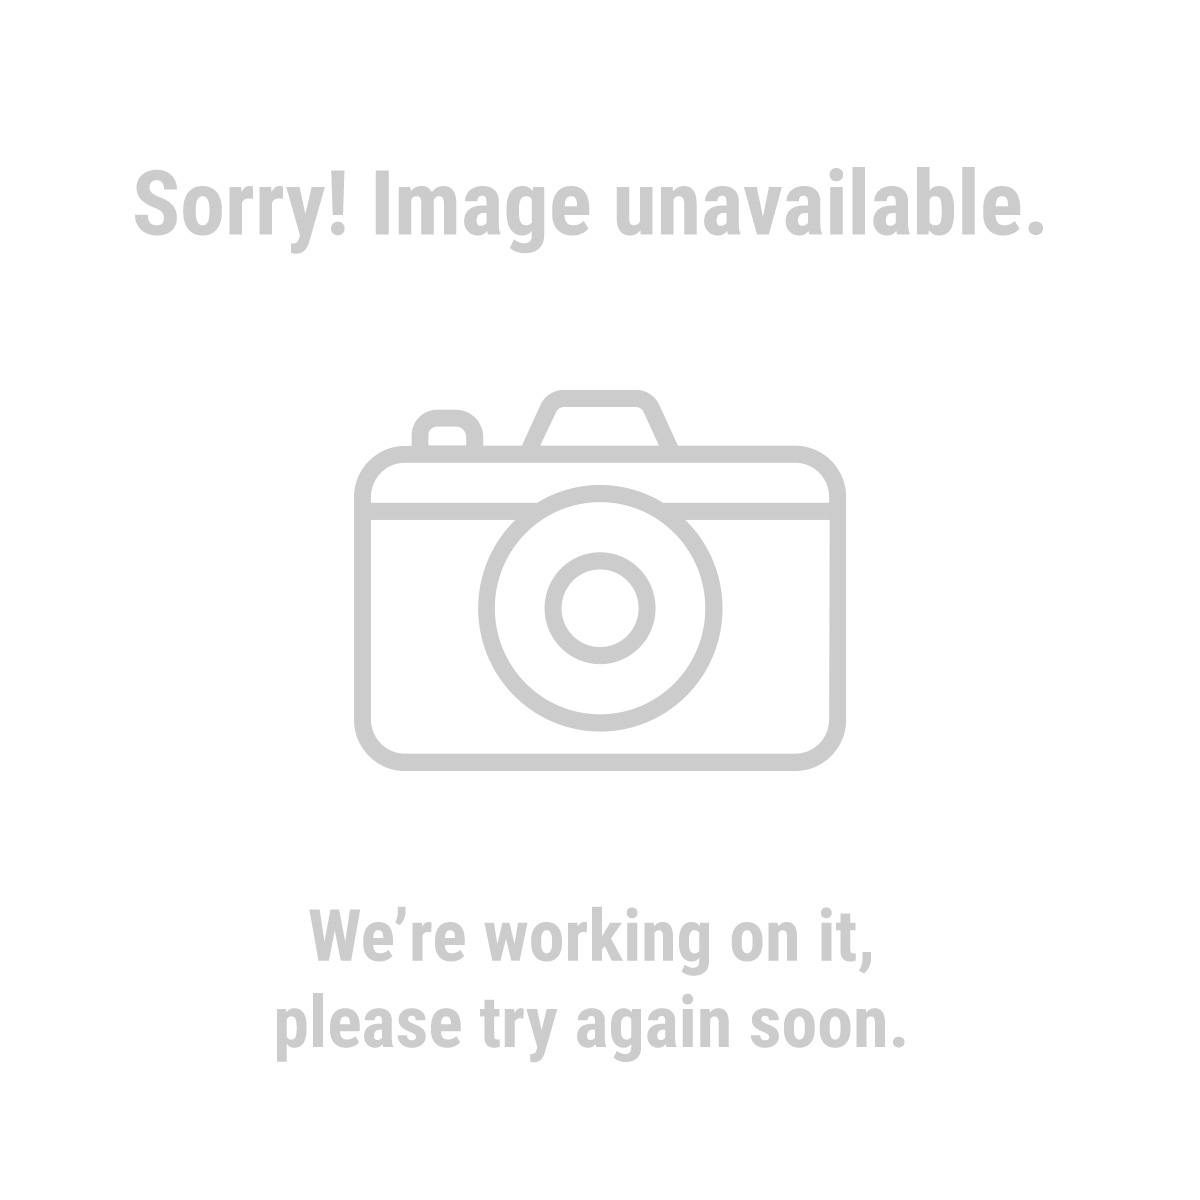 U.S. General® Pro 62580 18 in. 7 Drawer Glossy Red End Cabinet For Roller Tool Chest